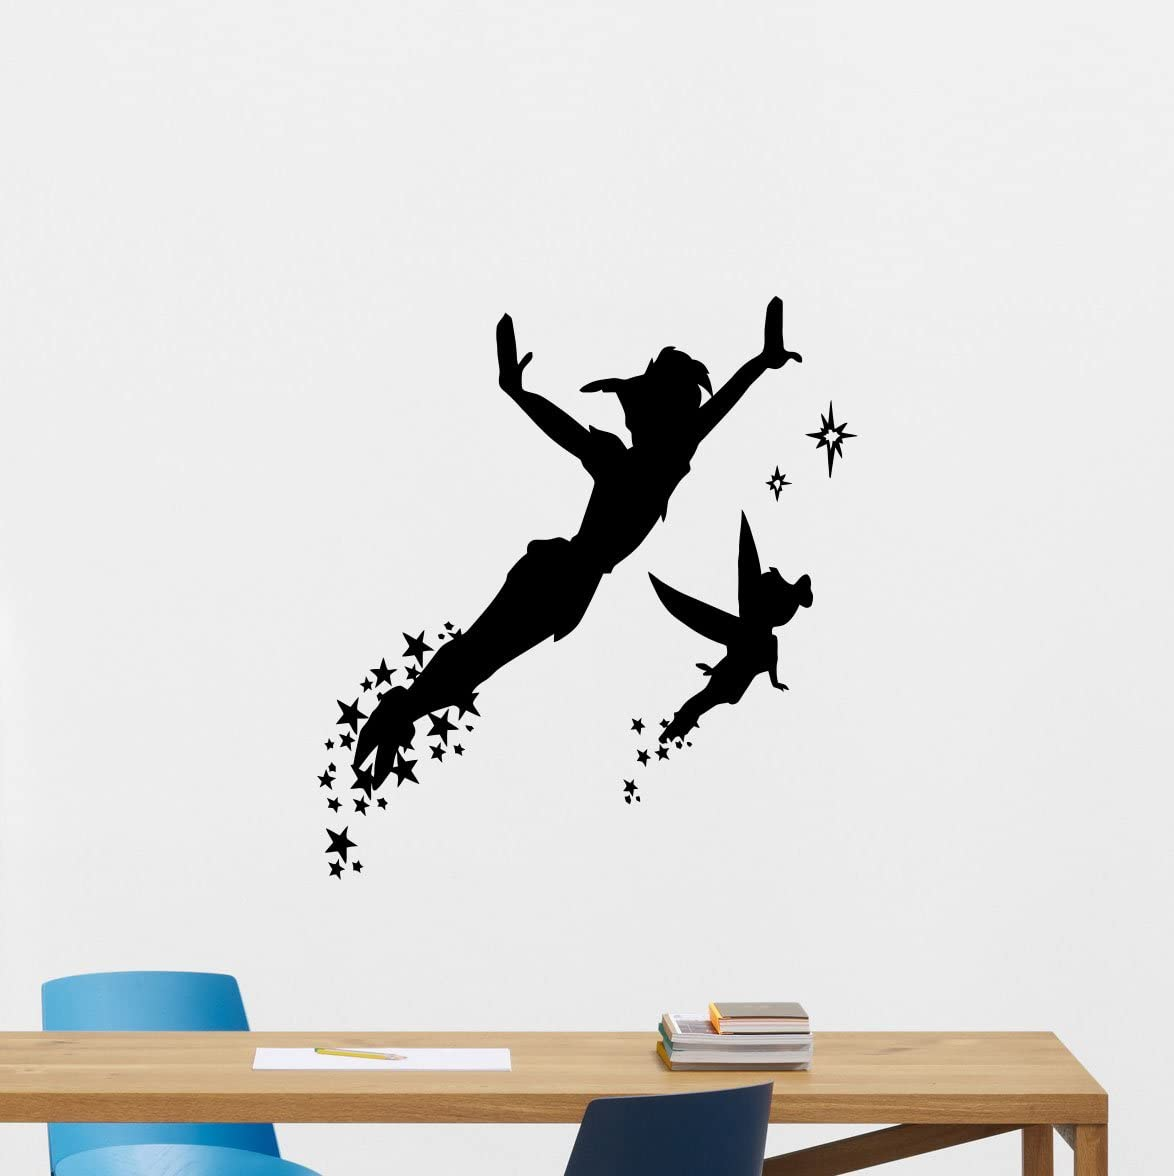 Amazon Com Peter Pan Wall Decal Walt Disney Fairy Silhouette Cartoons Quotes Vinyl Sticker Baby Girl Boy Custom Kids Room Art Bedroom Nursery Poster Decor Mural 247crt Kitchen Dining